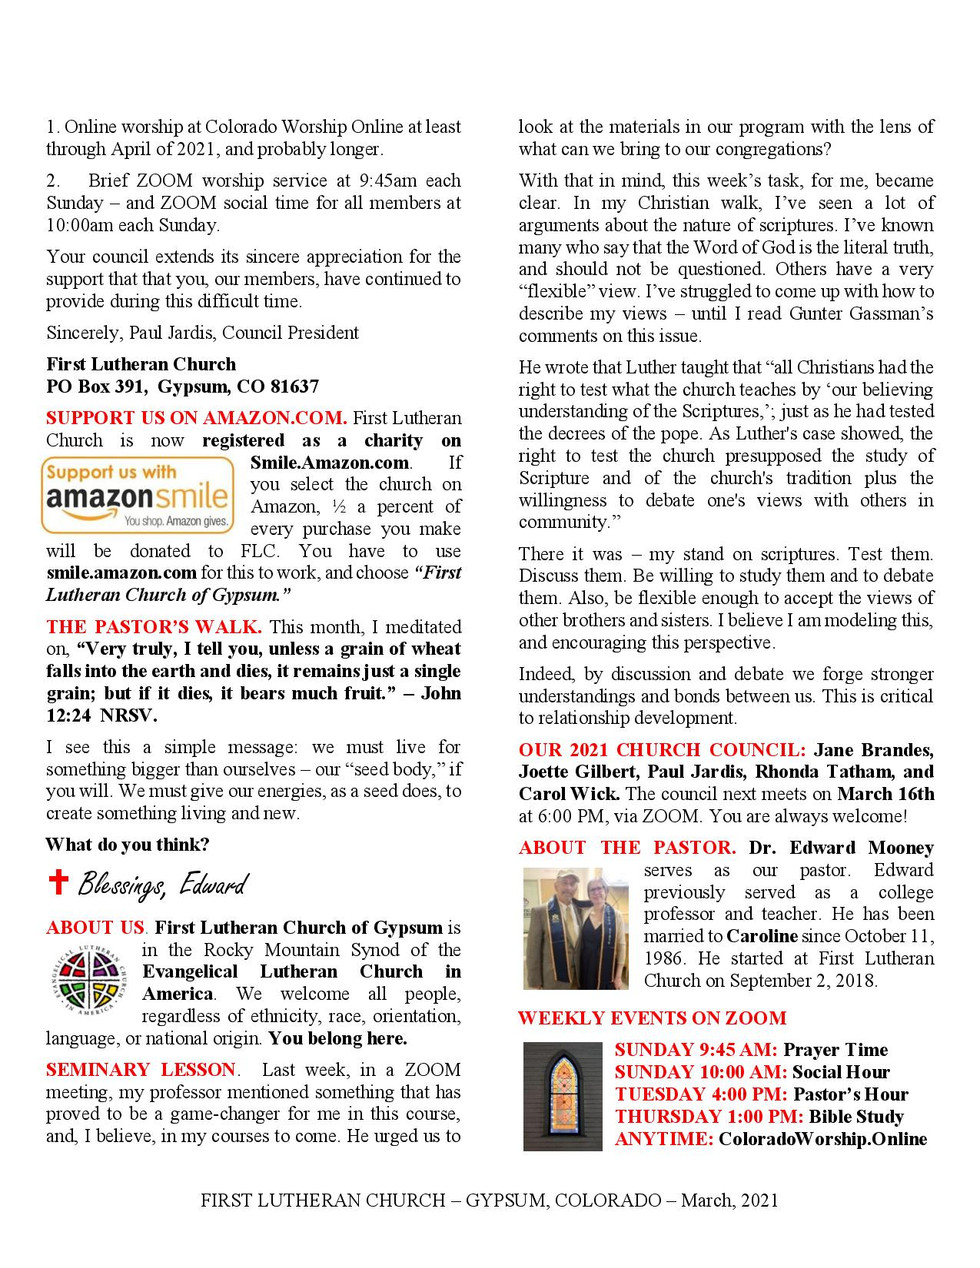 Newsletter for March, 2021. Page 2